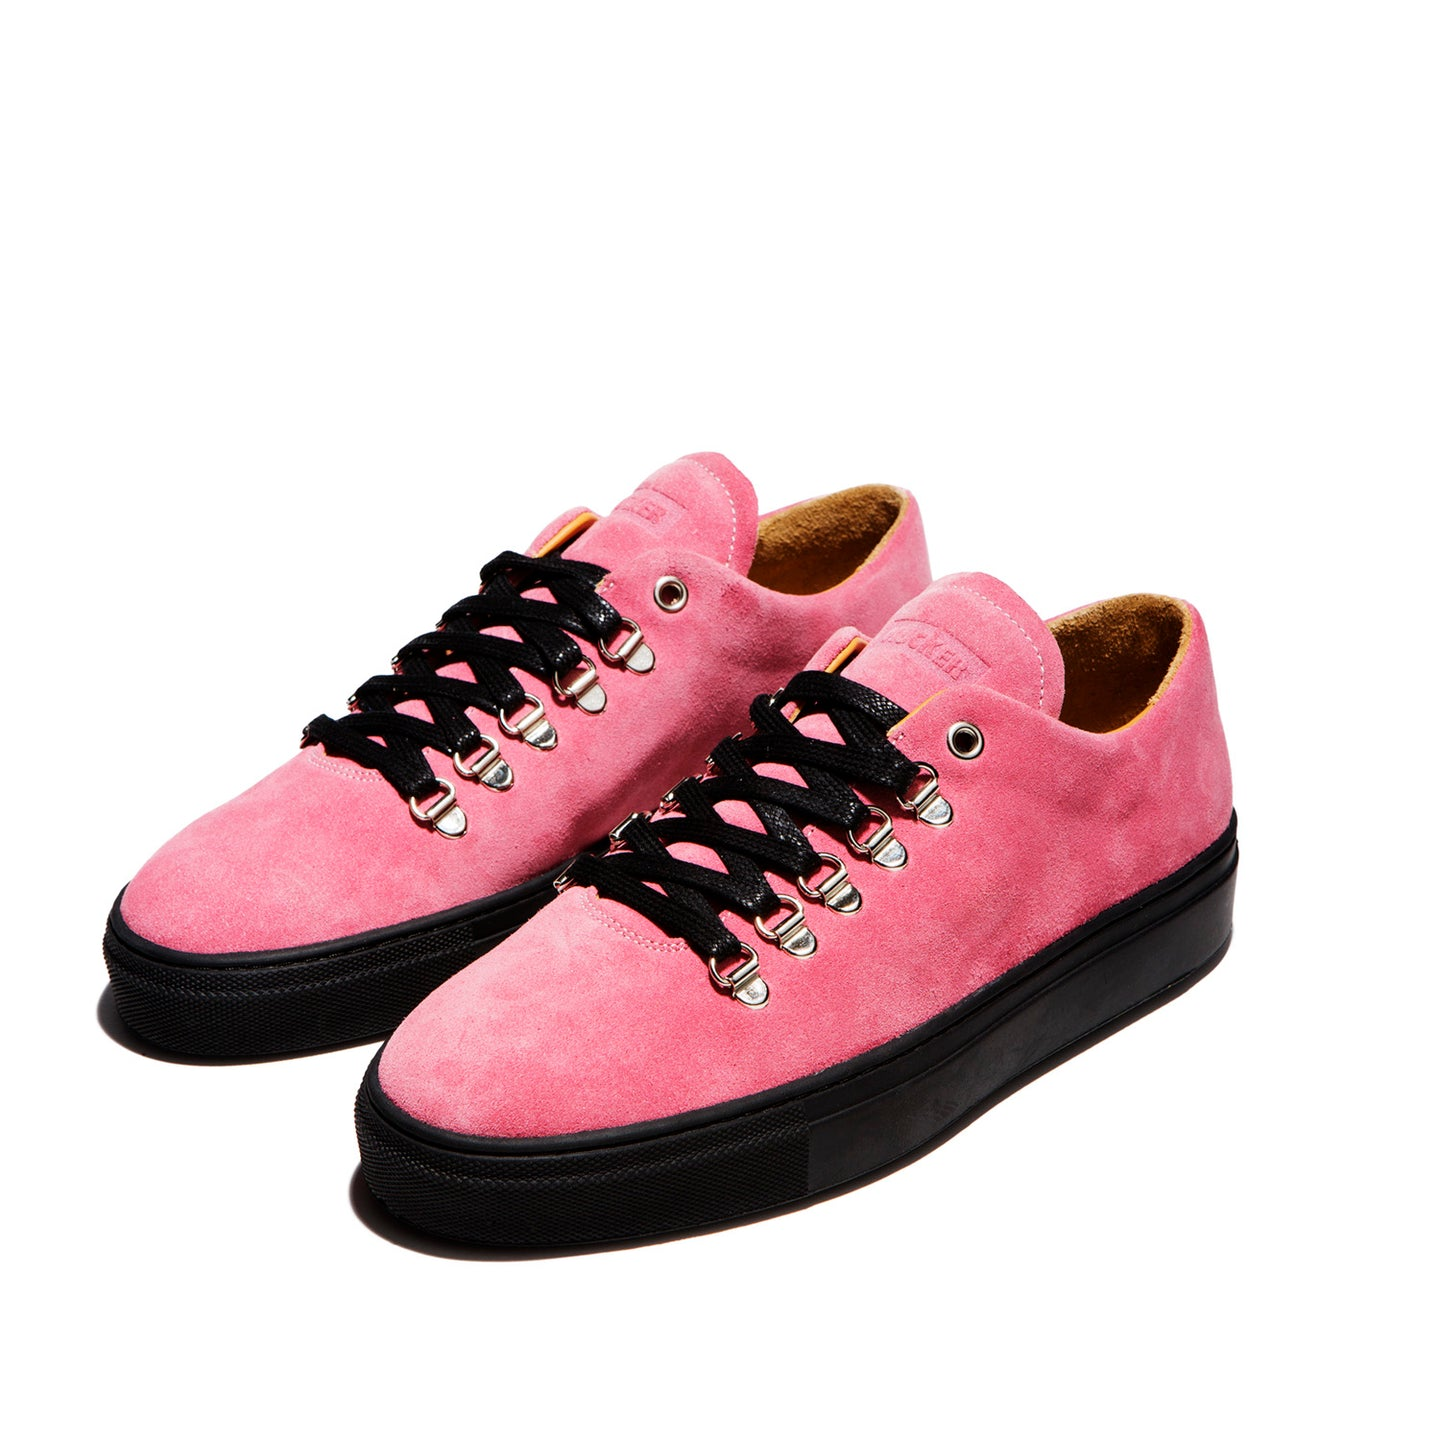 MUCKER RUBBER SOLE ORIGINAL Pink Suede